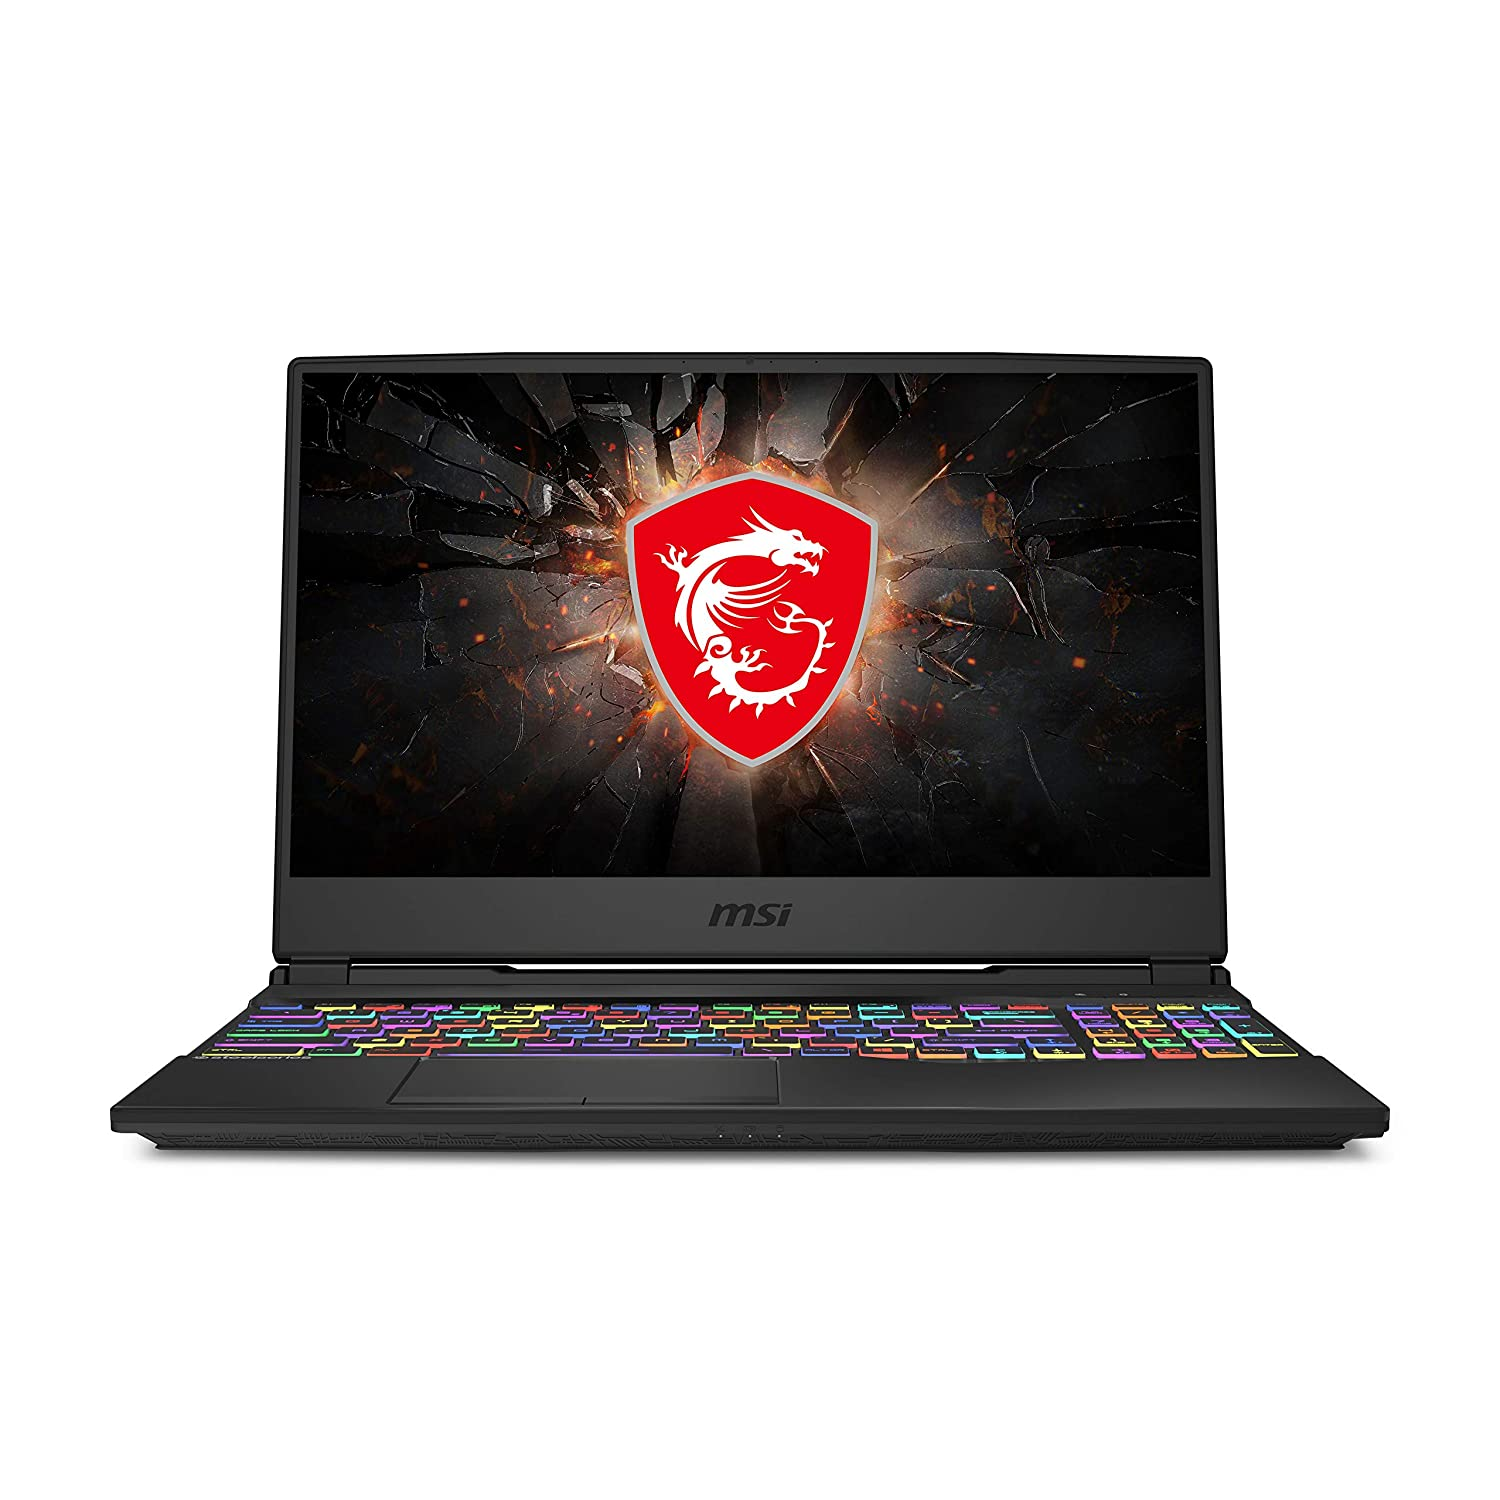 MSI GL65 Leopard, Intel 9th Gen. i5-9300H, 15.6